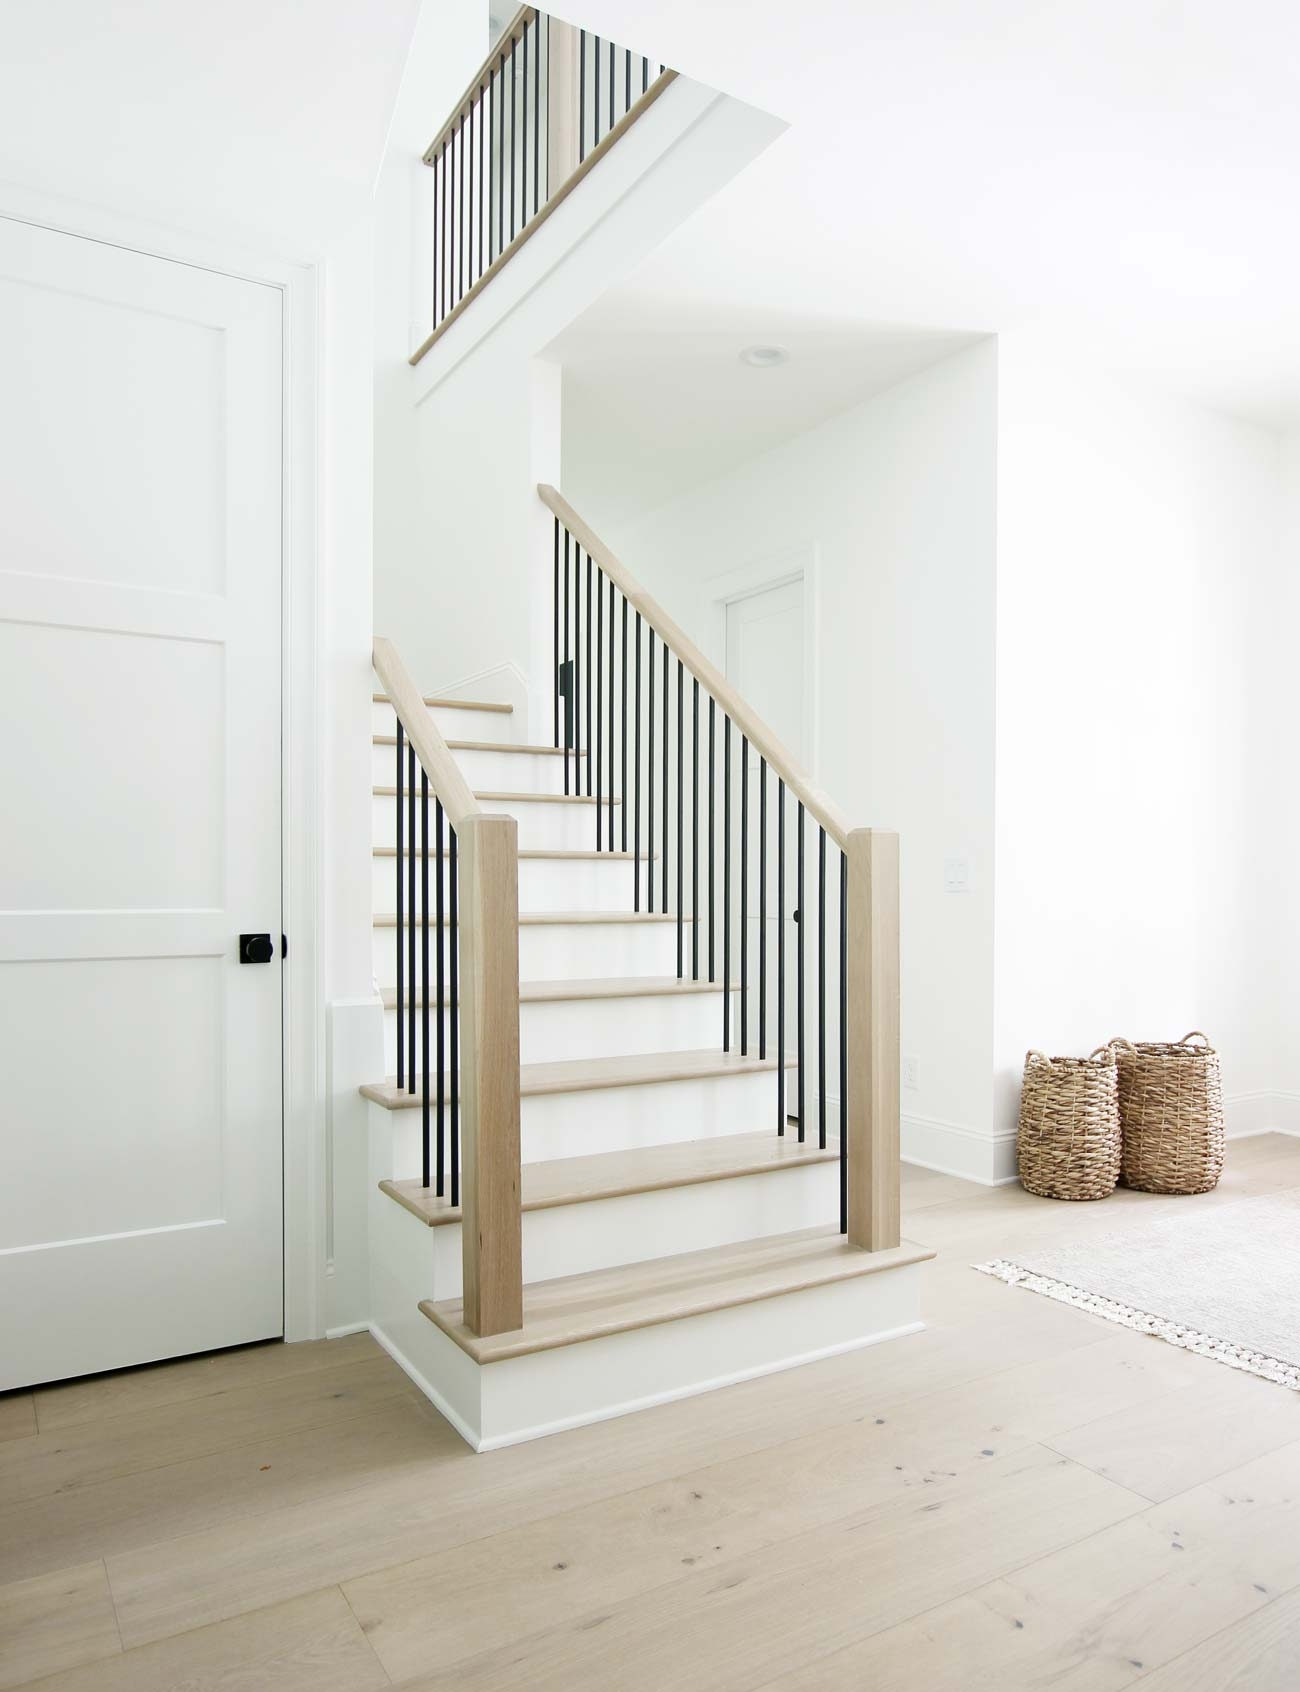 How To Match Solid Stair Treads To Prefinished Hardwood Flooring   White Oak Stair Treads Lowes   Stairtek Retrotread   Red Oak   Unfinished   Staircase Remodel   Wood